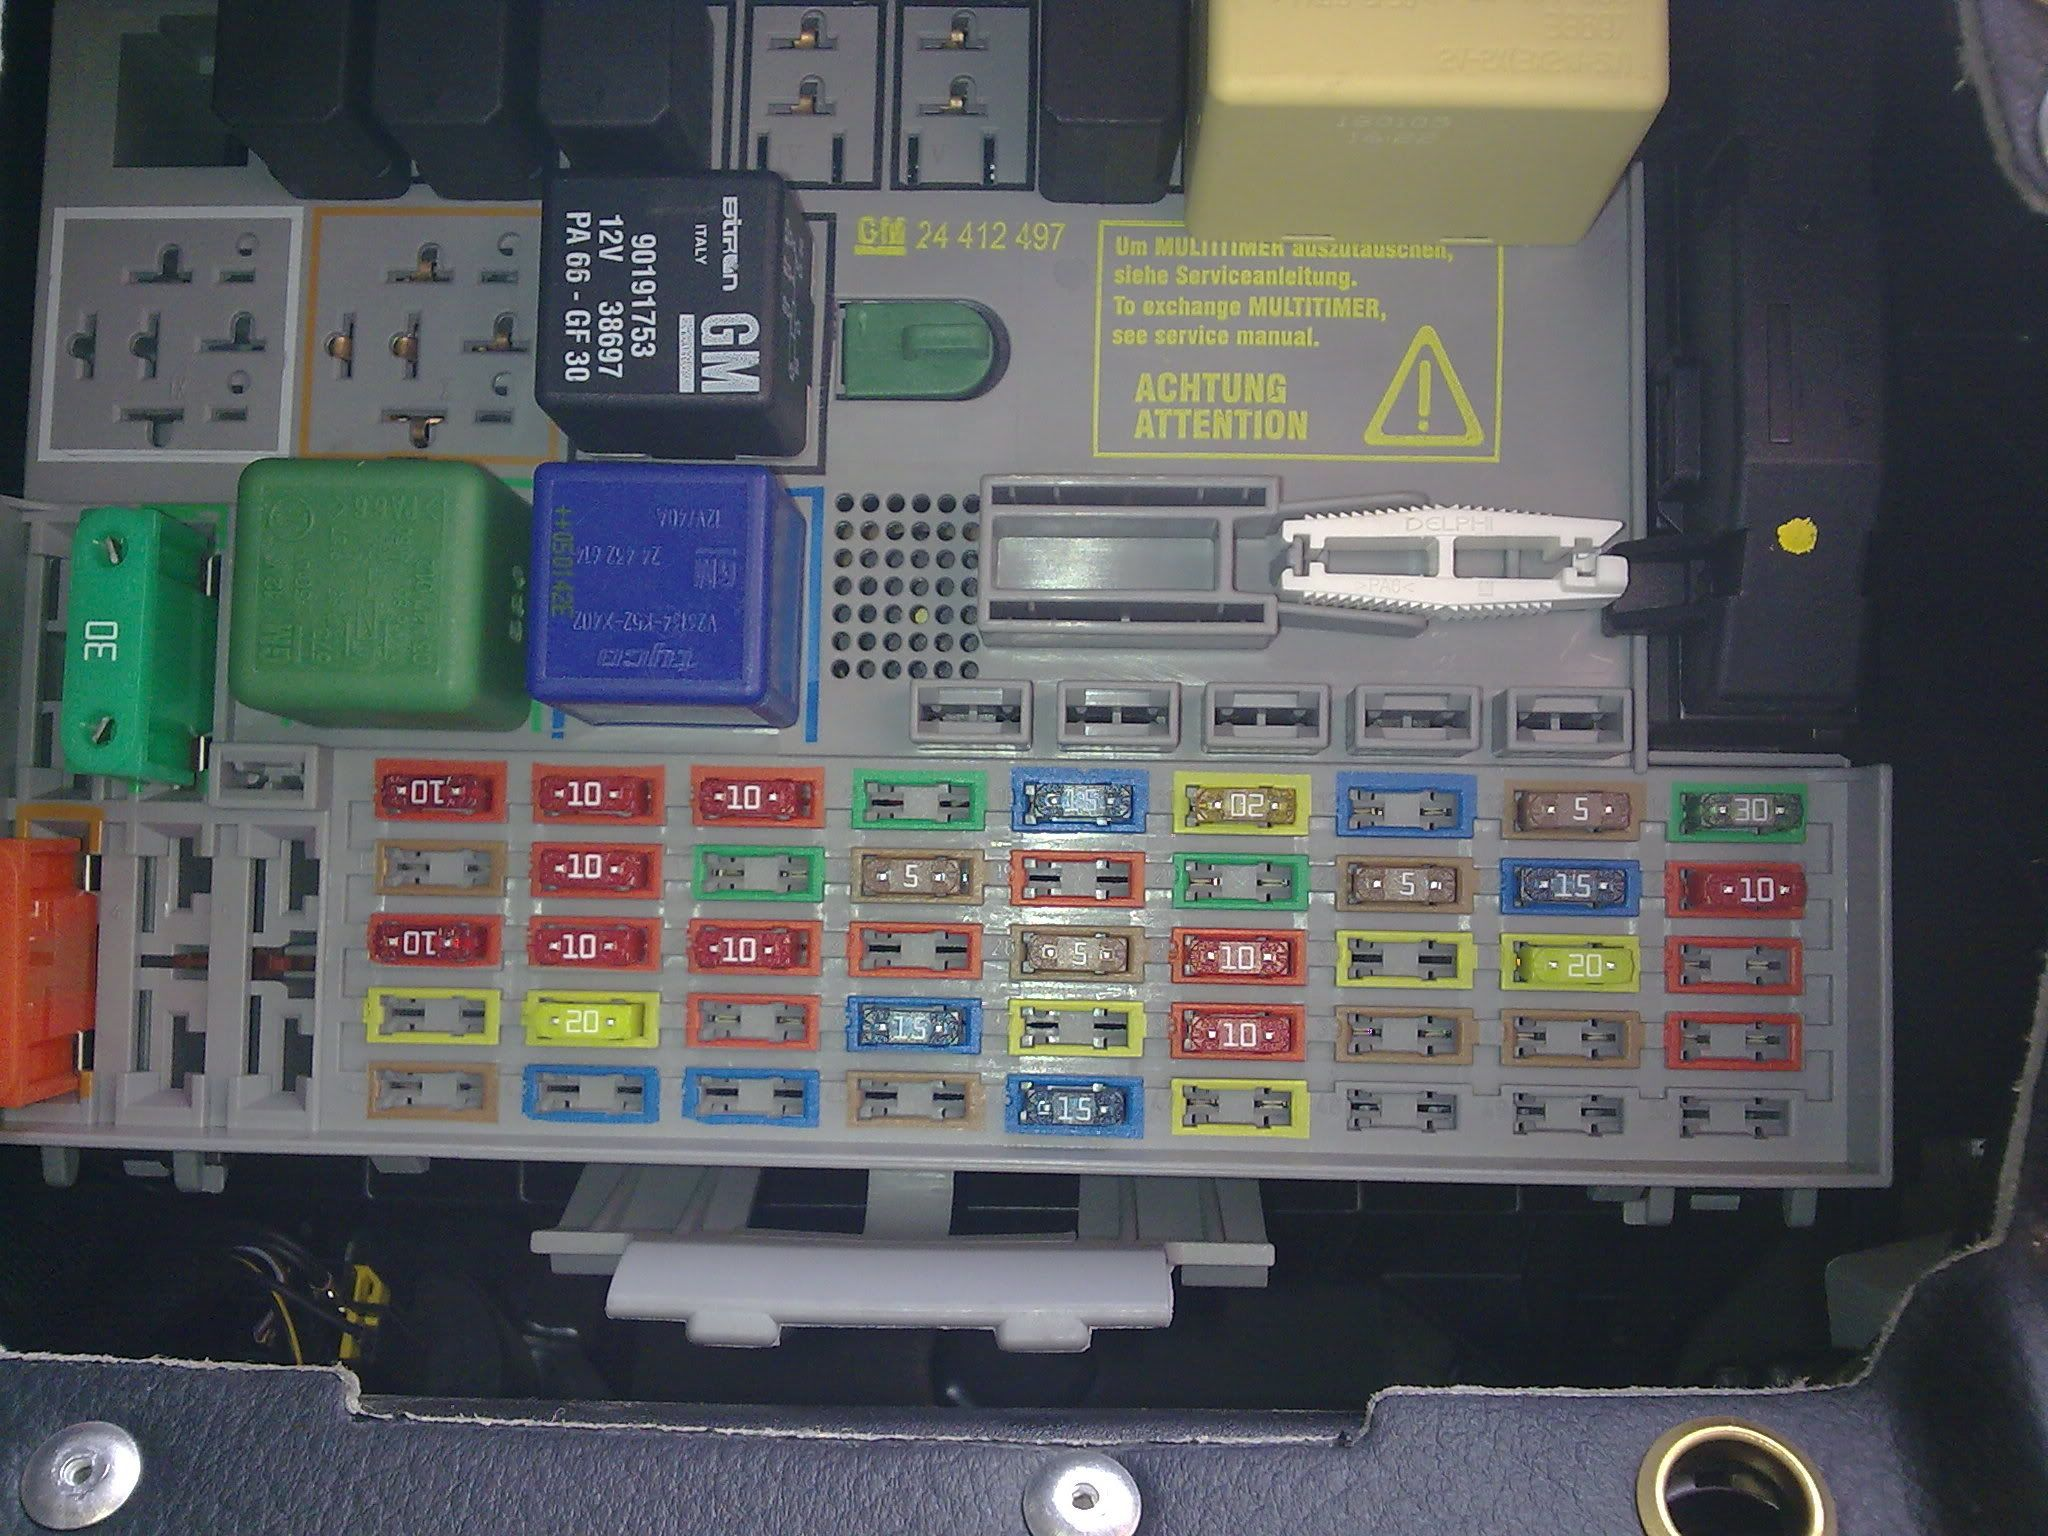 81cc4b547515edcd7c4059702fd3c90a img photobucket com albums v333 leesturbo image597 jpg zafira fuse box diagram 2001 at edmiracle.co